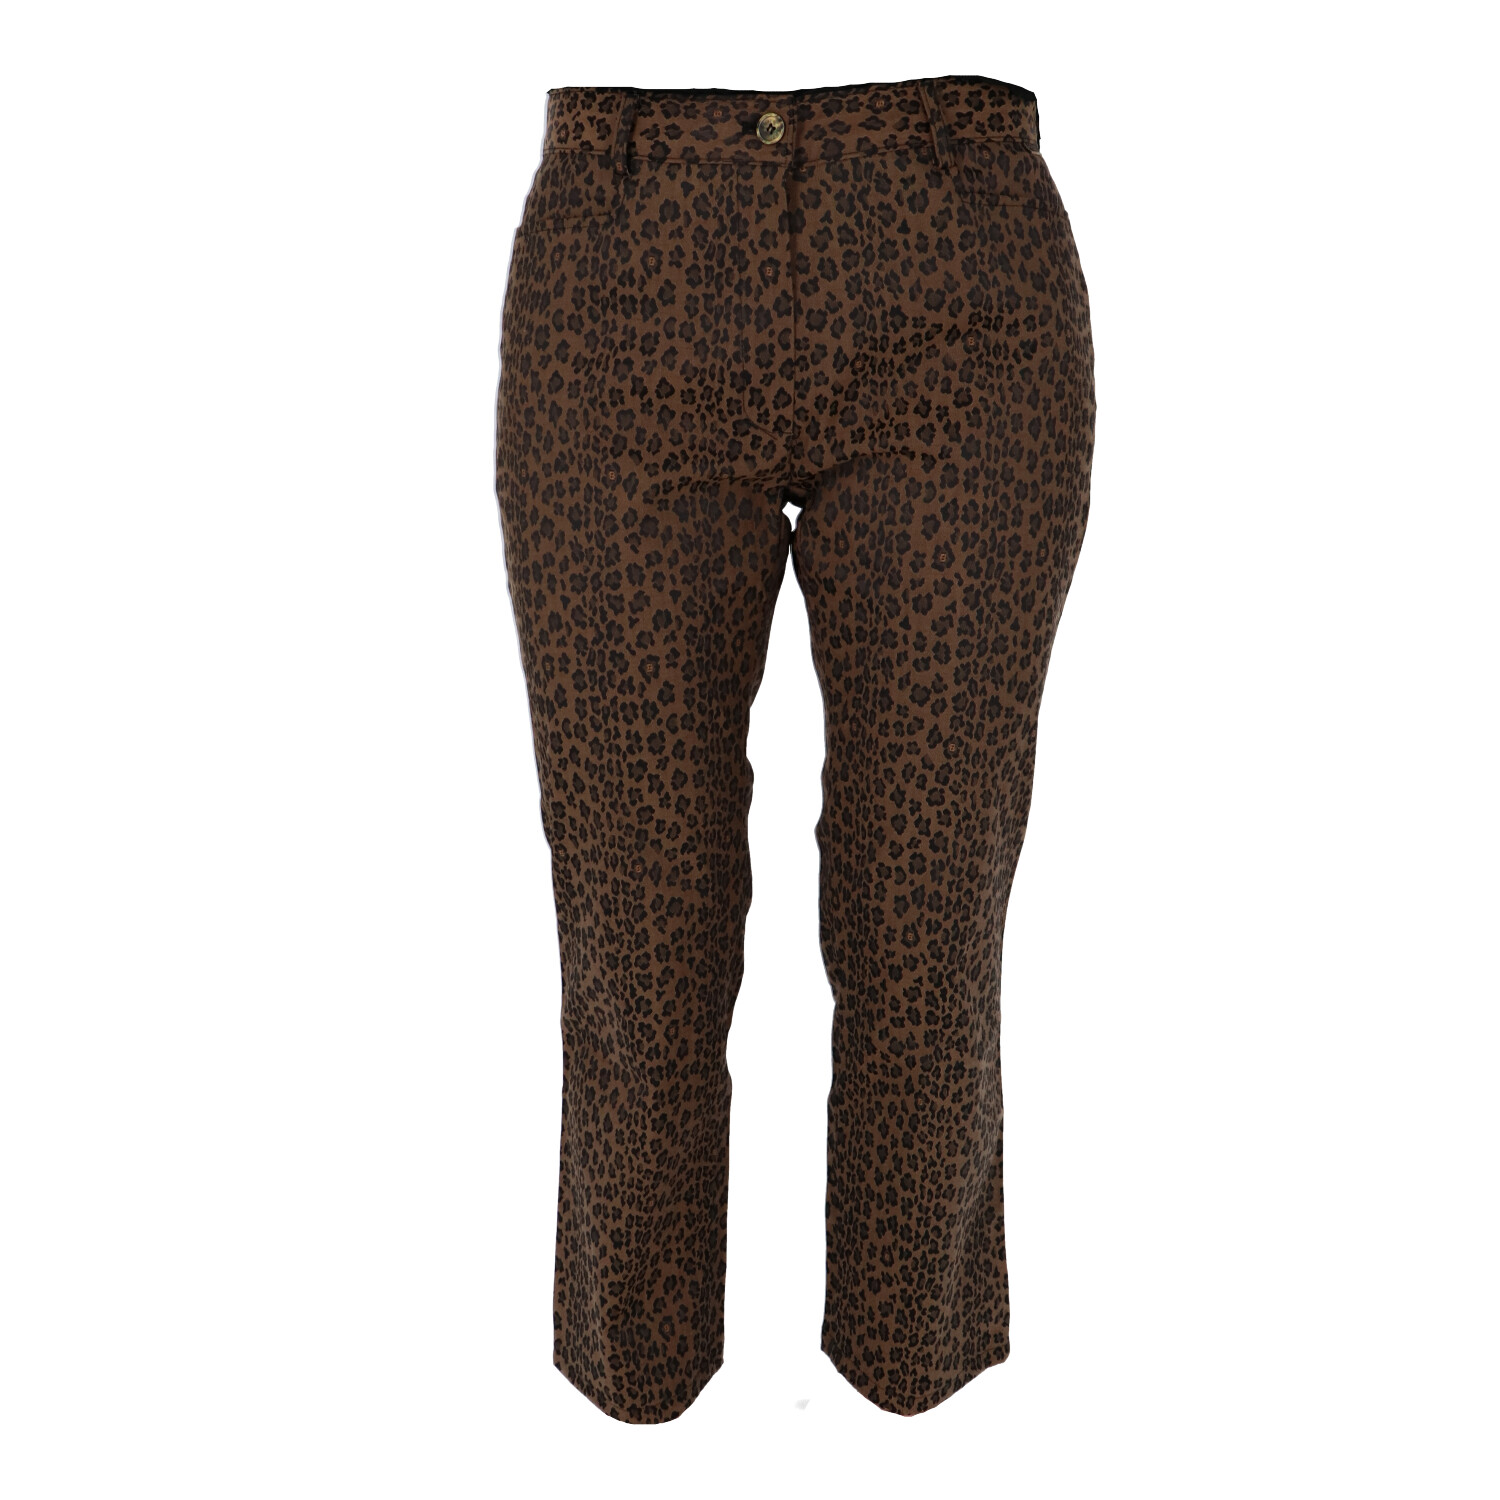 Fendi Animal print Fabric Pants